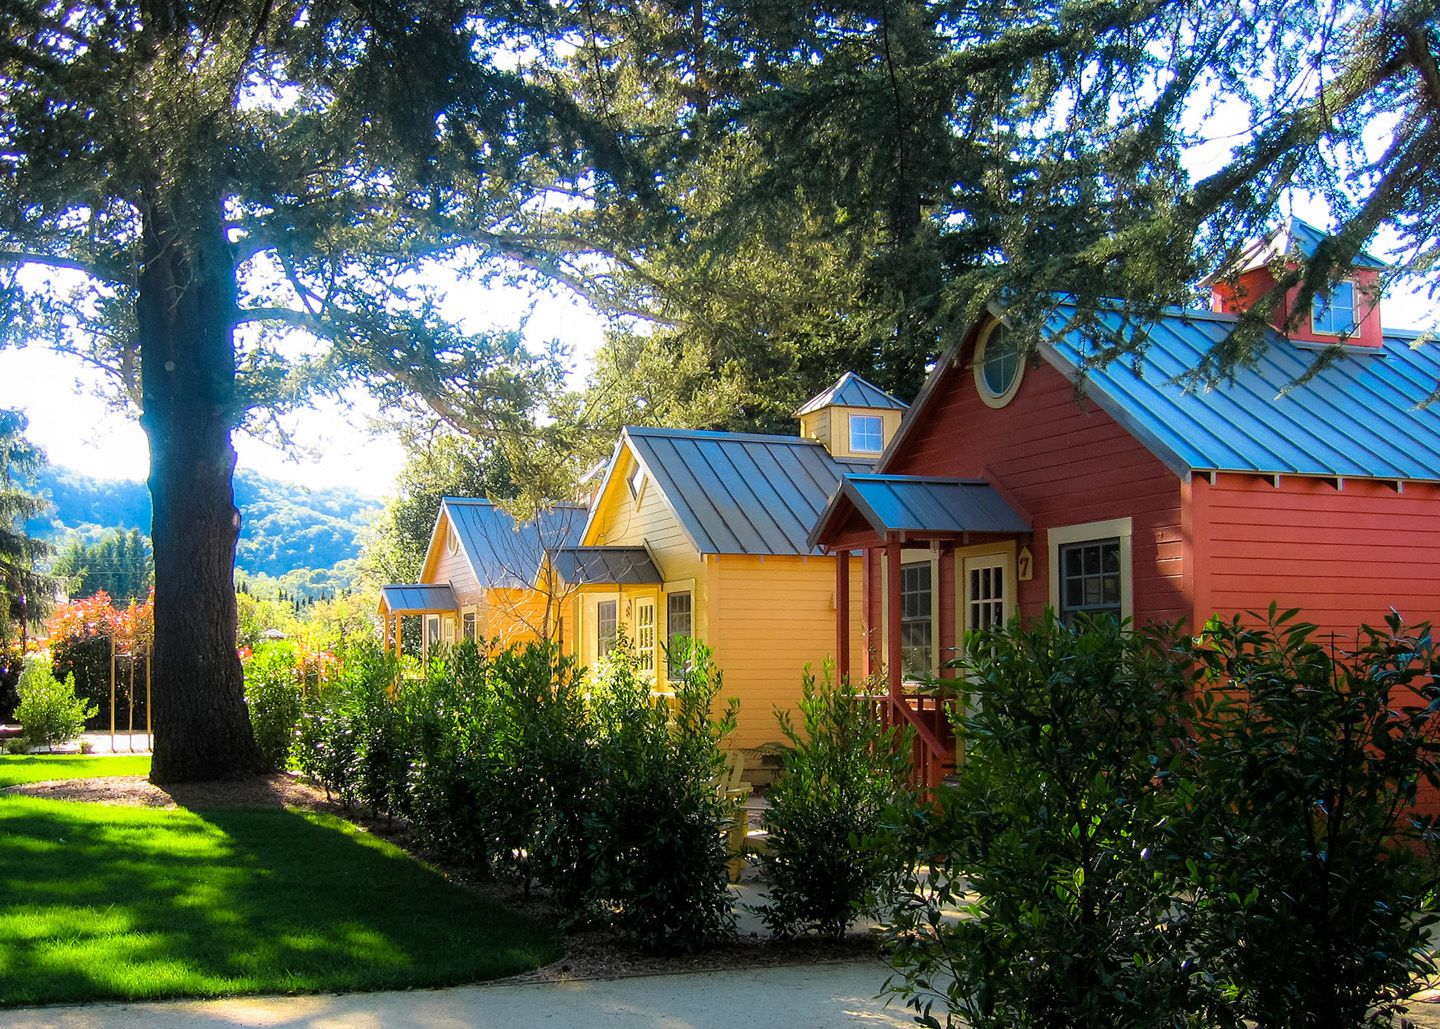 The Cottages Offer Modern Amenities In A Quiet Rustic Setting Just South Of Yountville Napa Valley Perfect For A R Hotels In Napa Cottage Valley Cottage